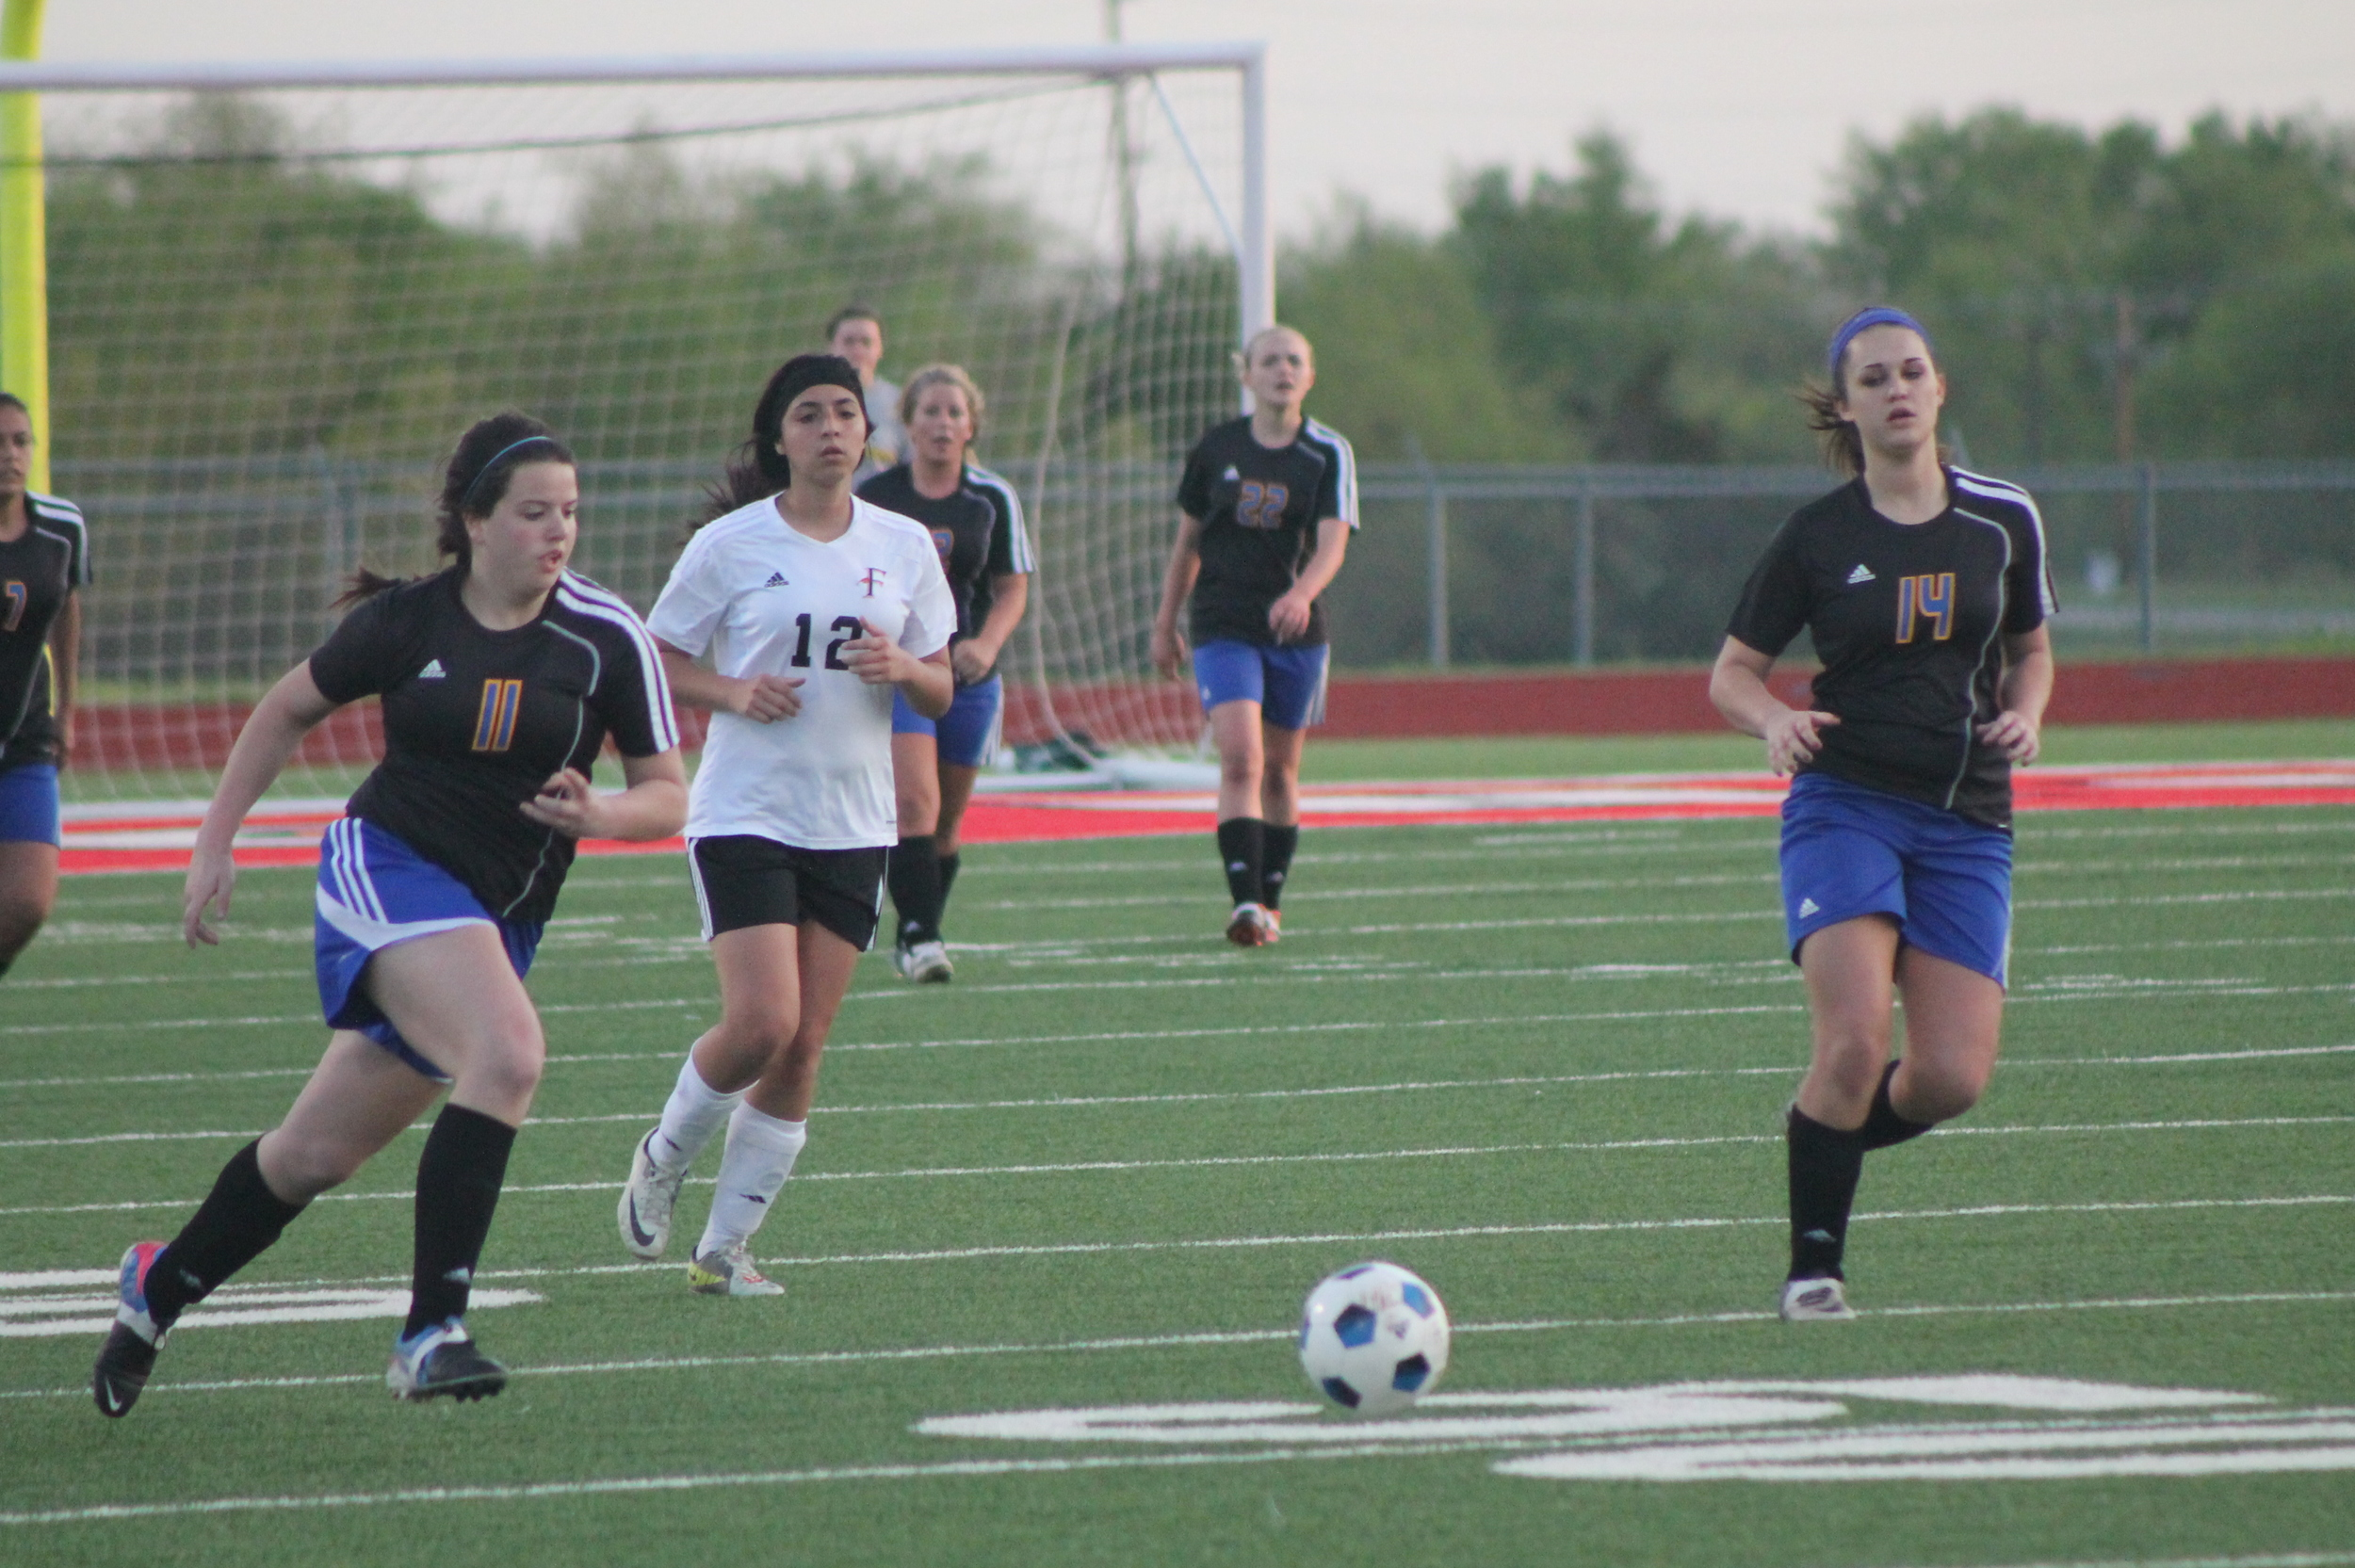 (Photo by Adam Routon) Claire Thompson pushes the ball back upfield.